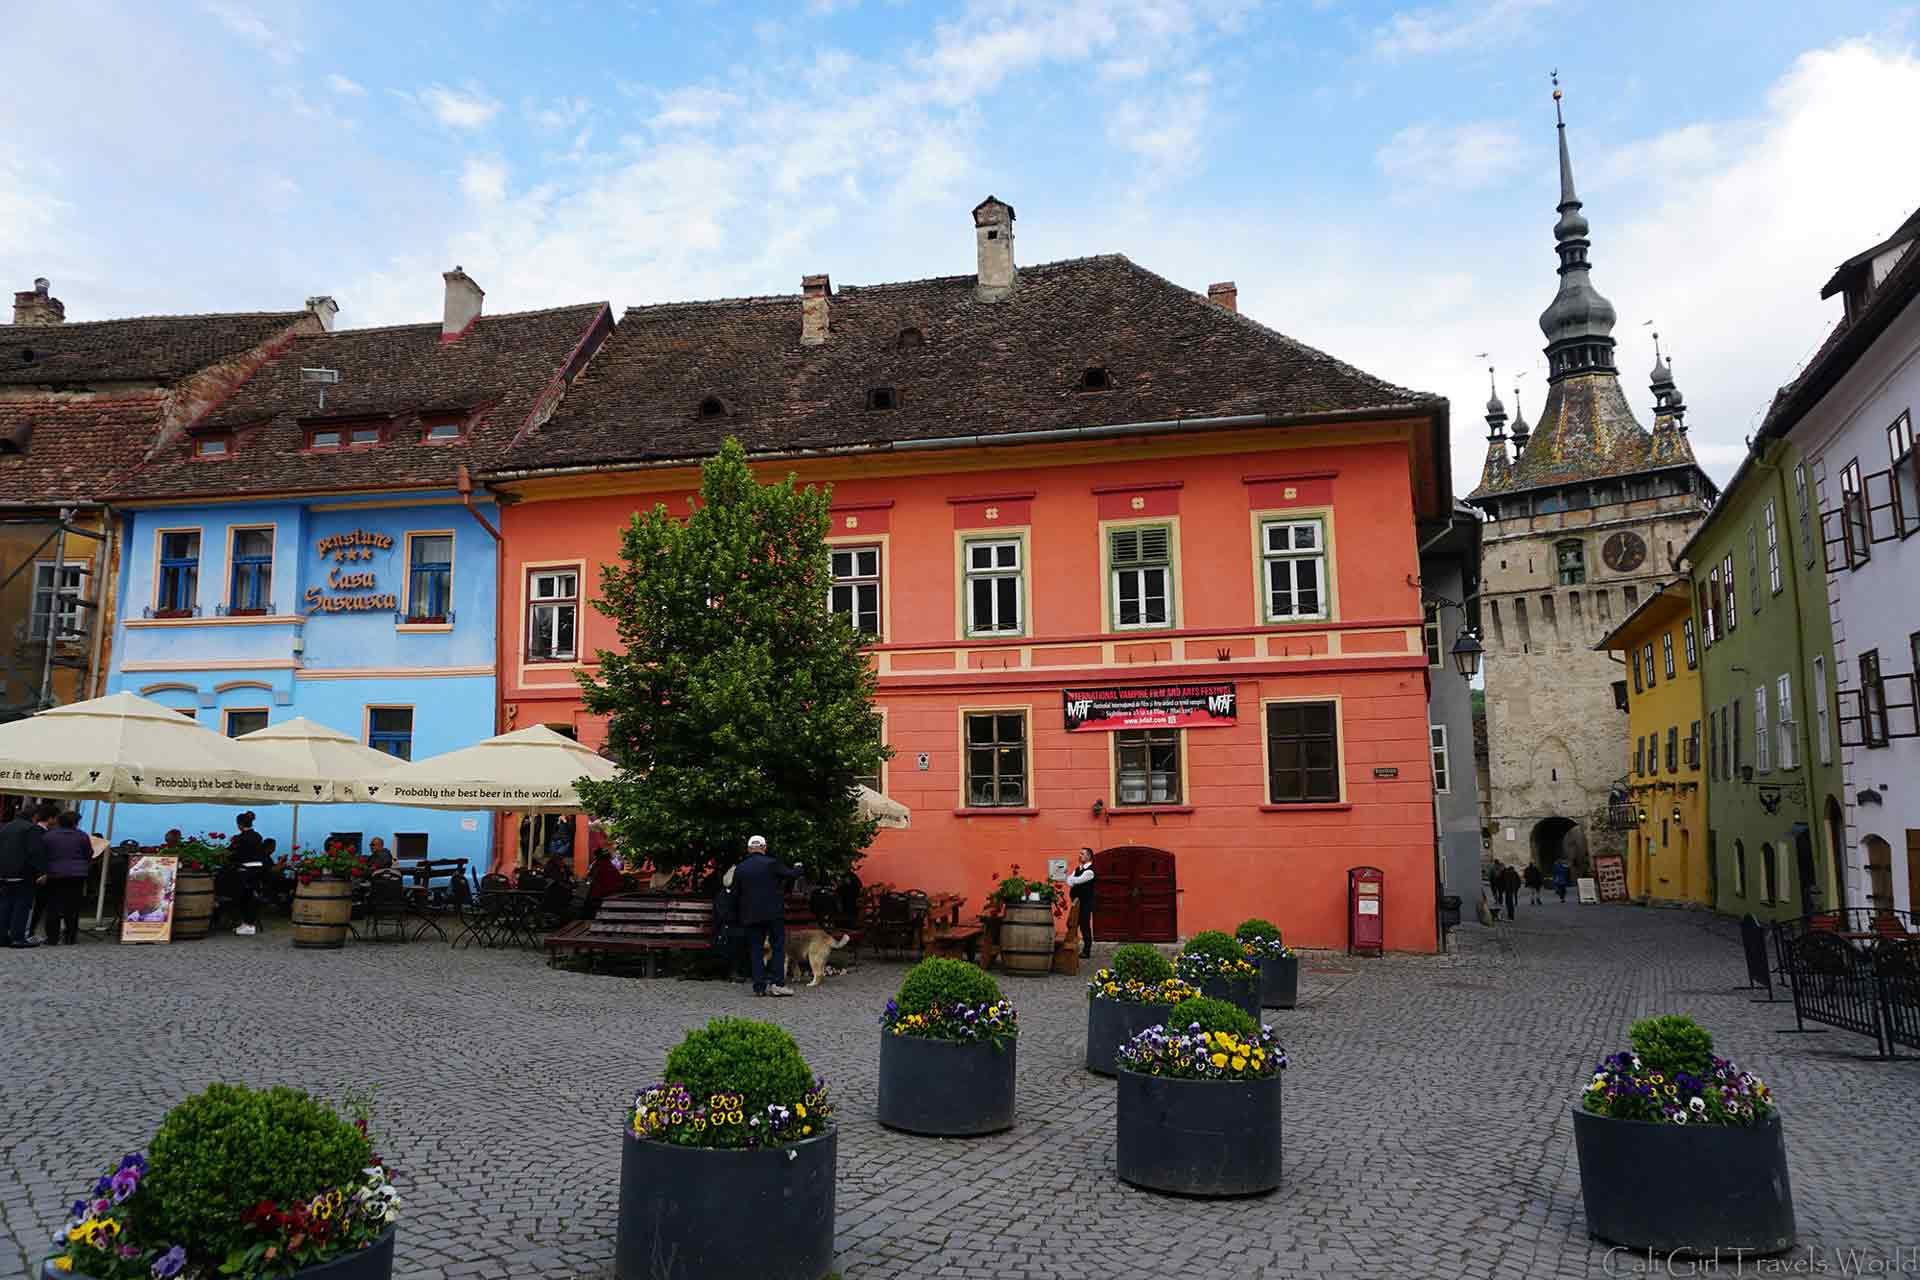 The main square in the UNESCO site of Sighisoara, Transylvania, Romania.